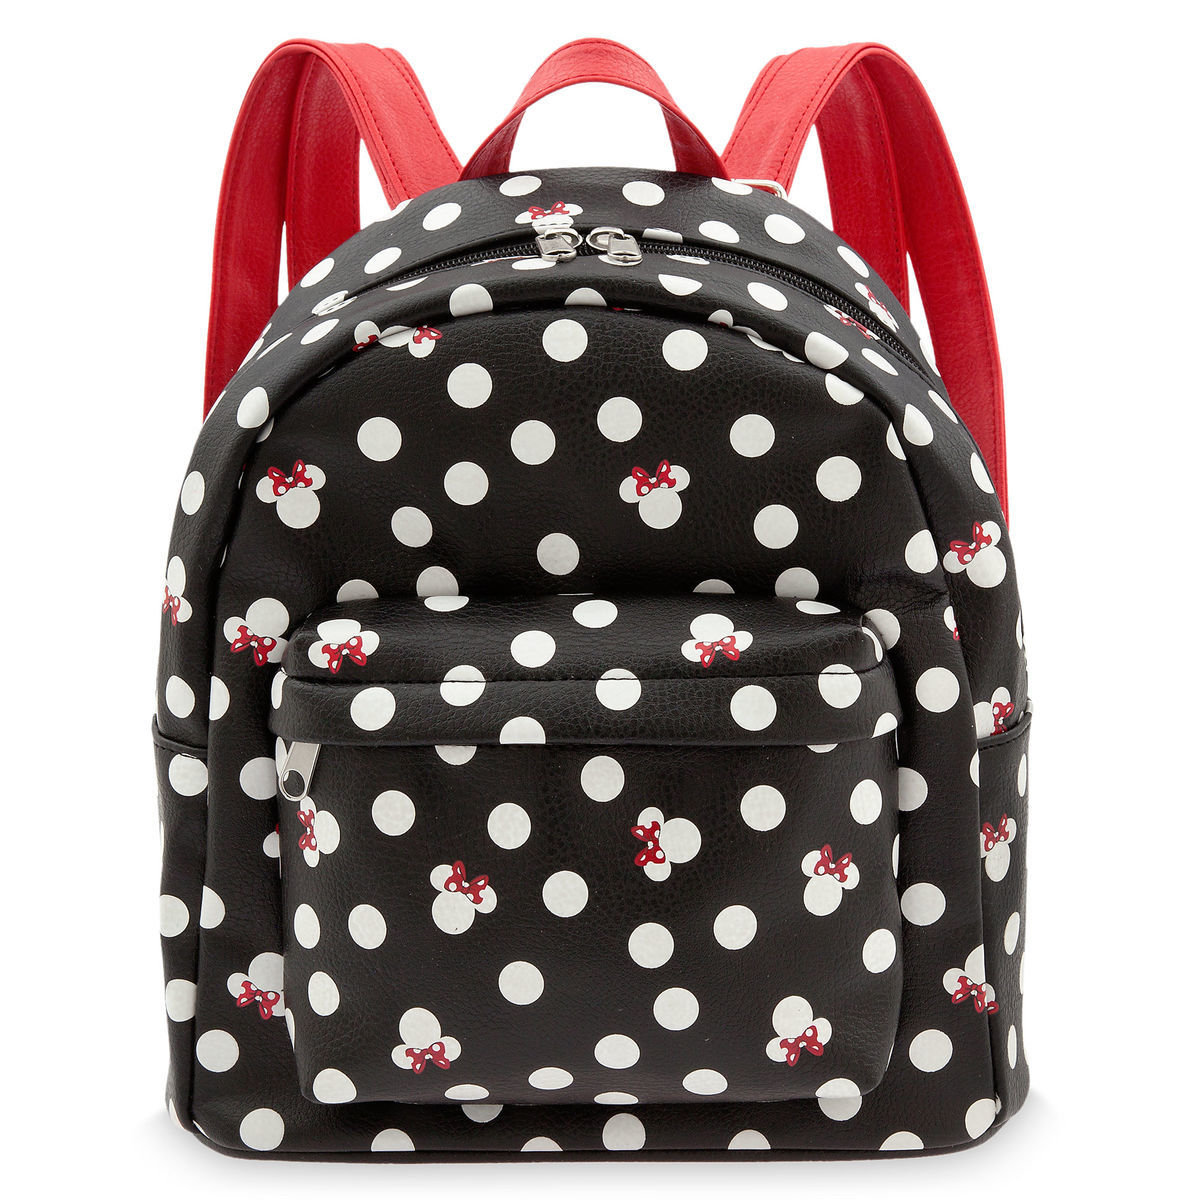 Product Image of Minnie Mouse Mini Backpack - Adults   1 7cb9a76aaf15e